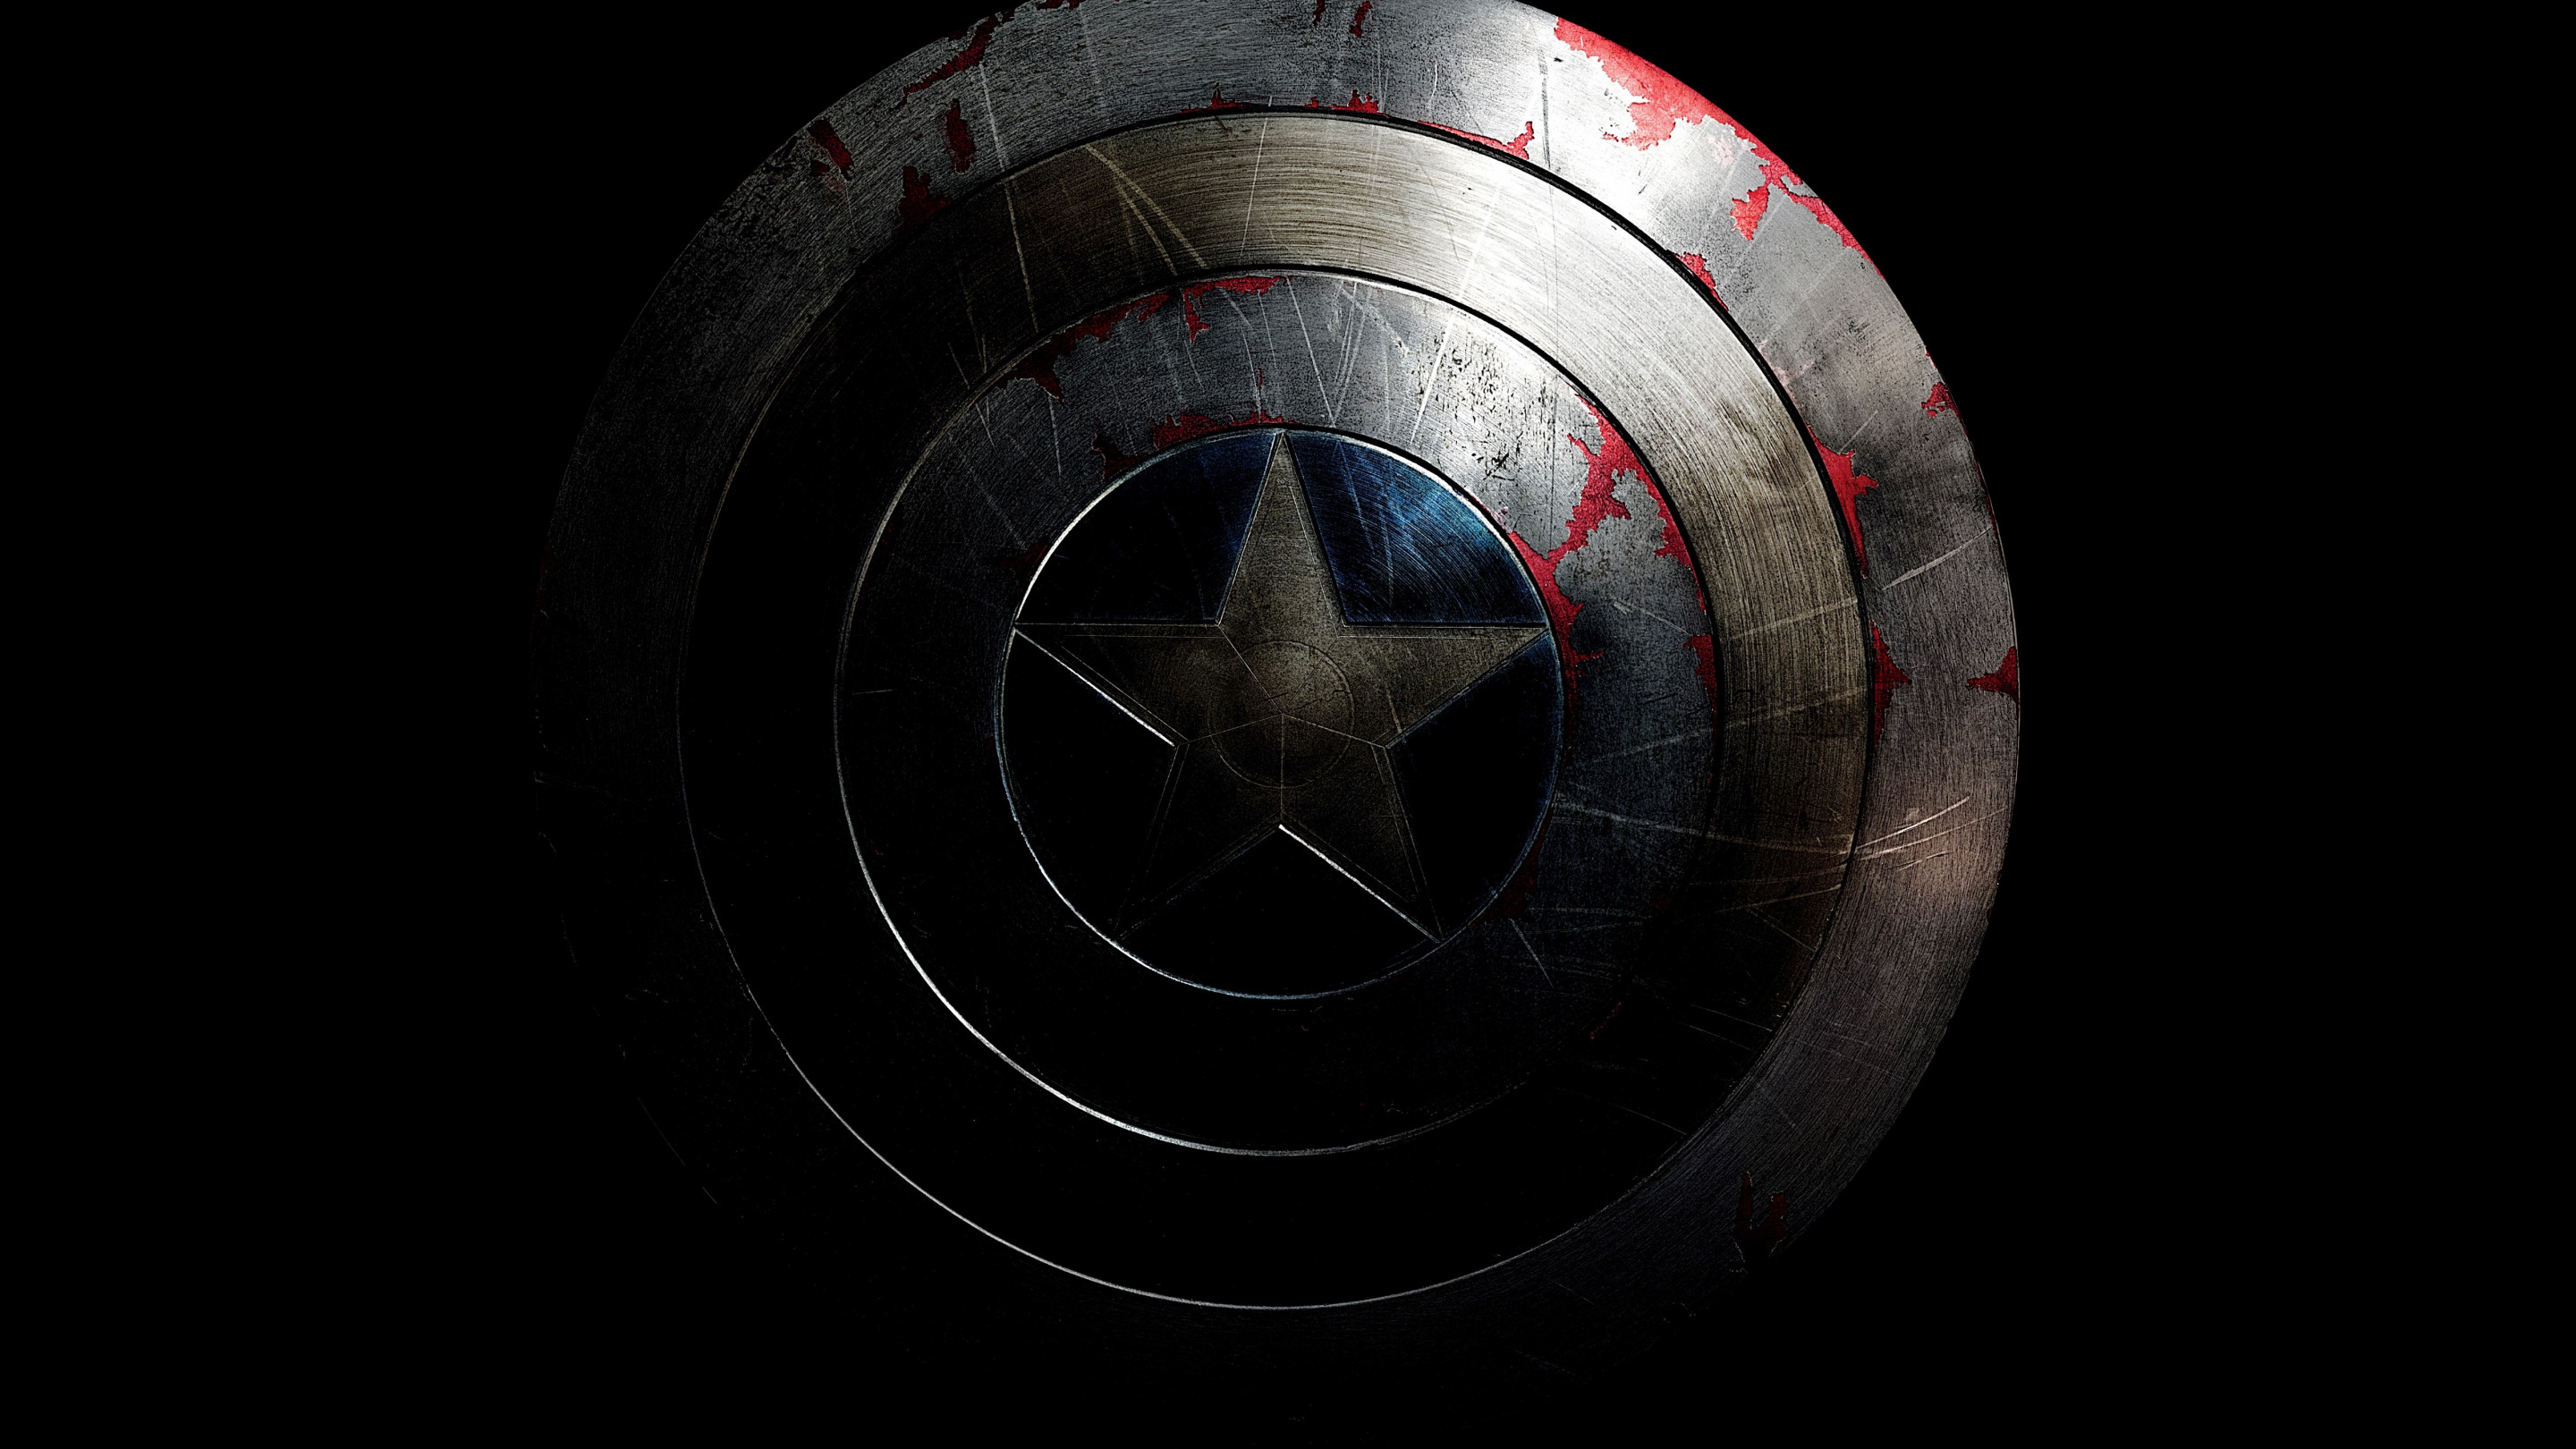 The shield of Captain America wallpaper 2880x1620